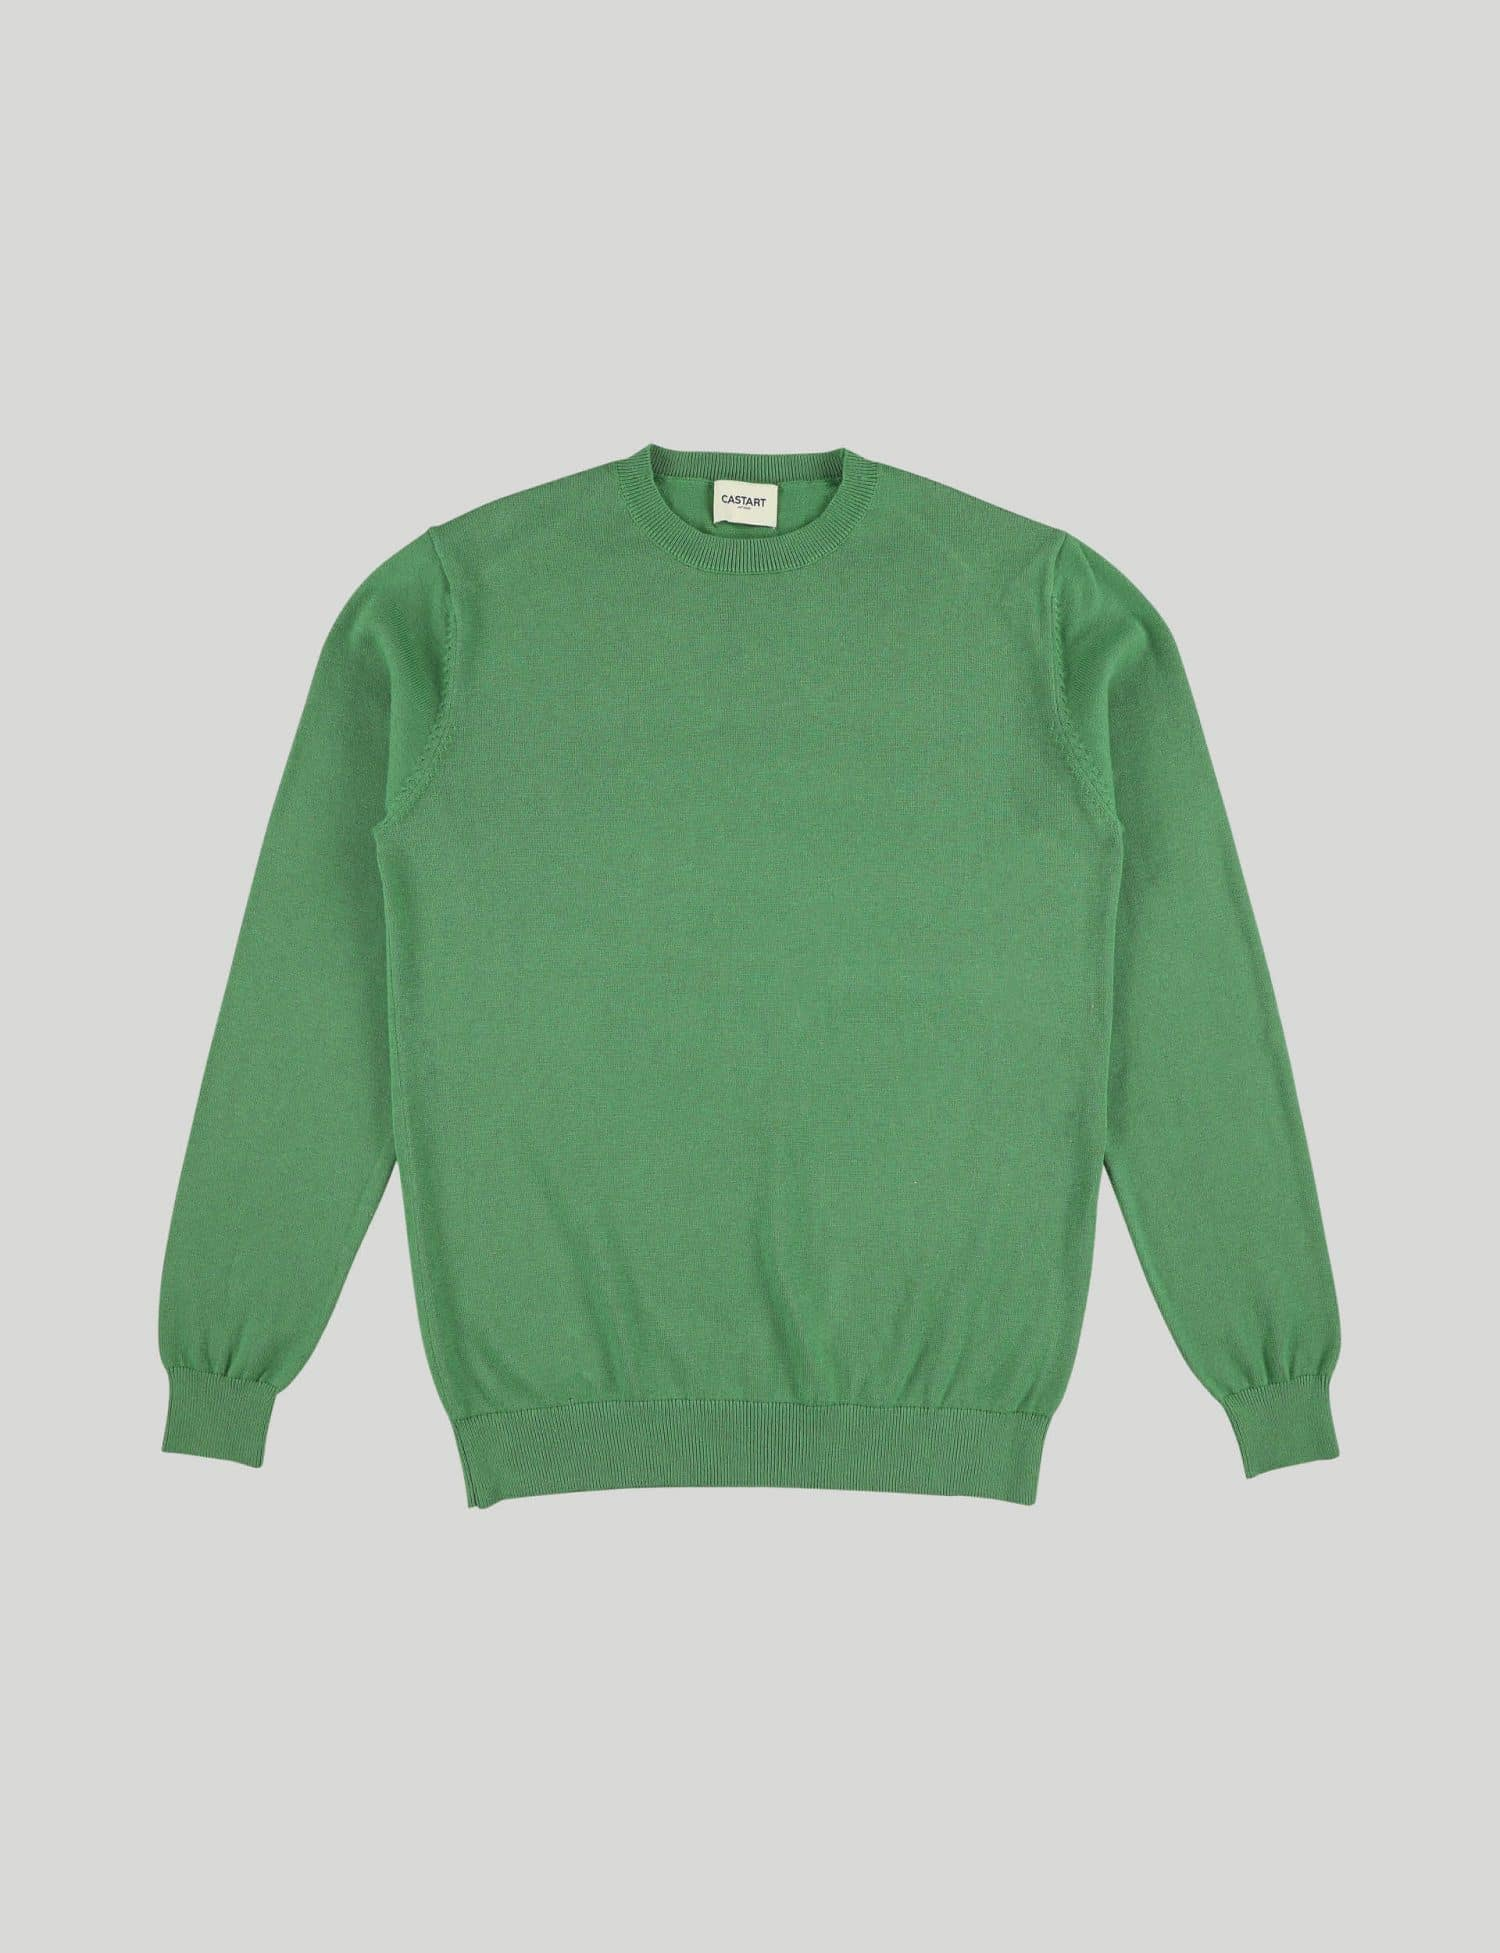 Castart - Shrubs knitwear - Green